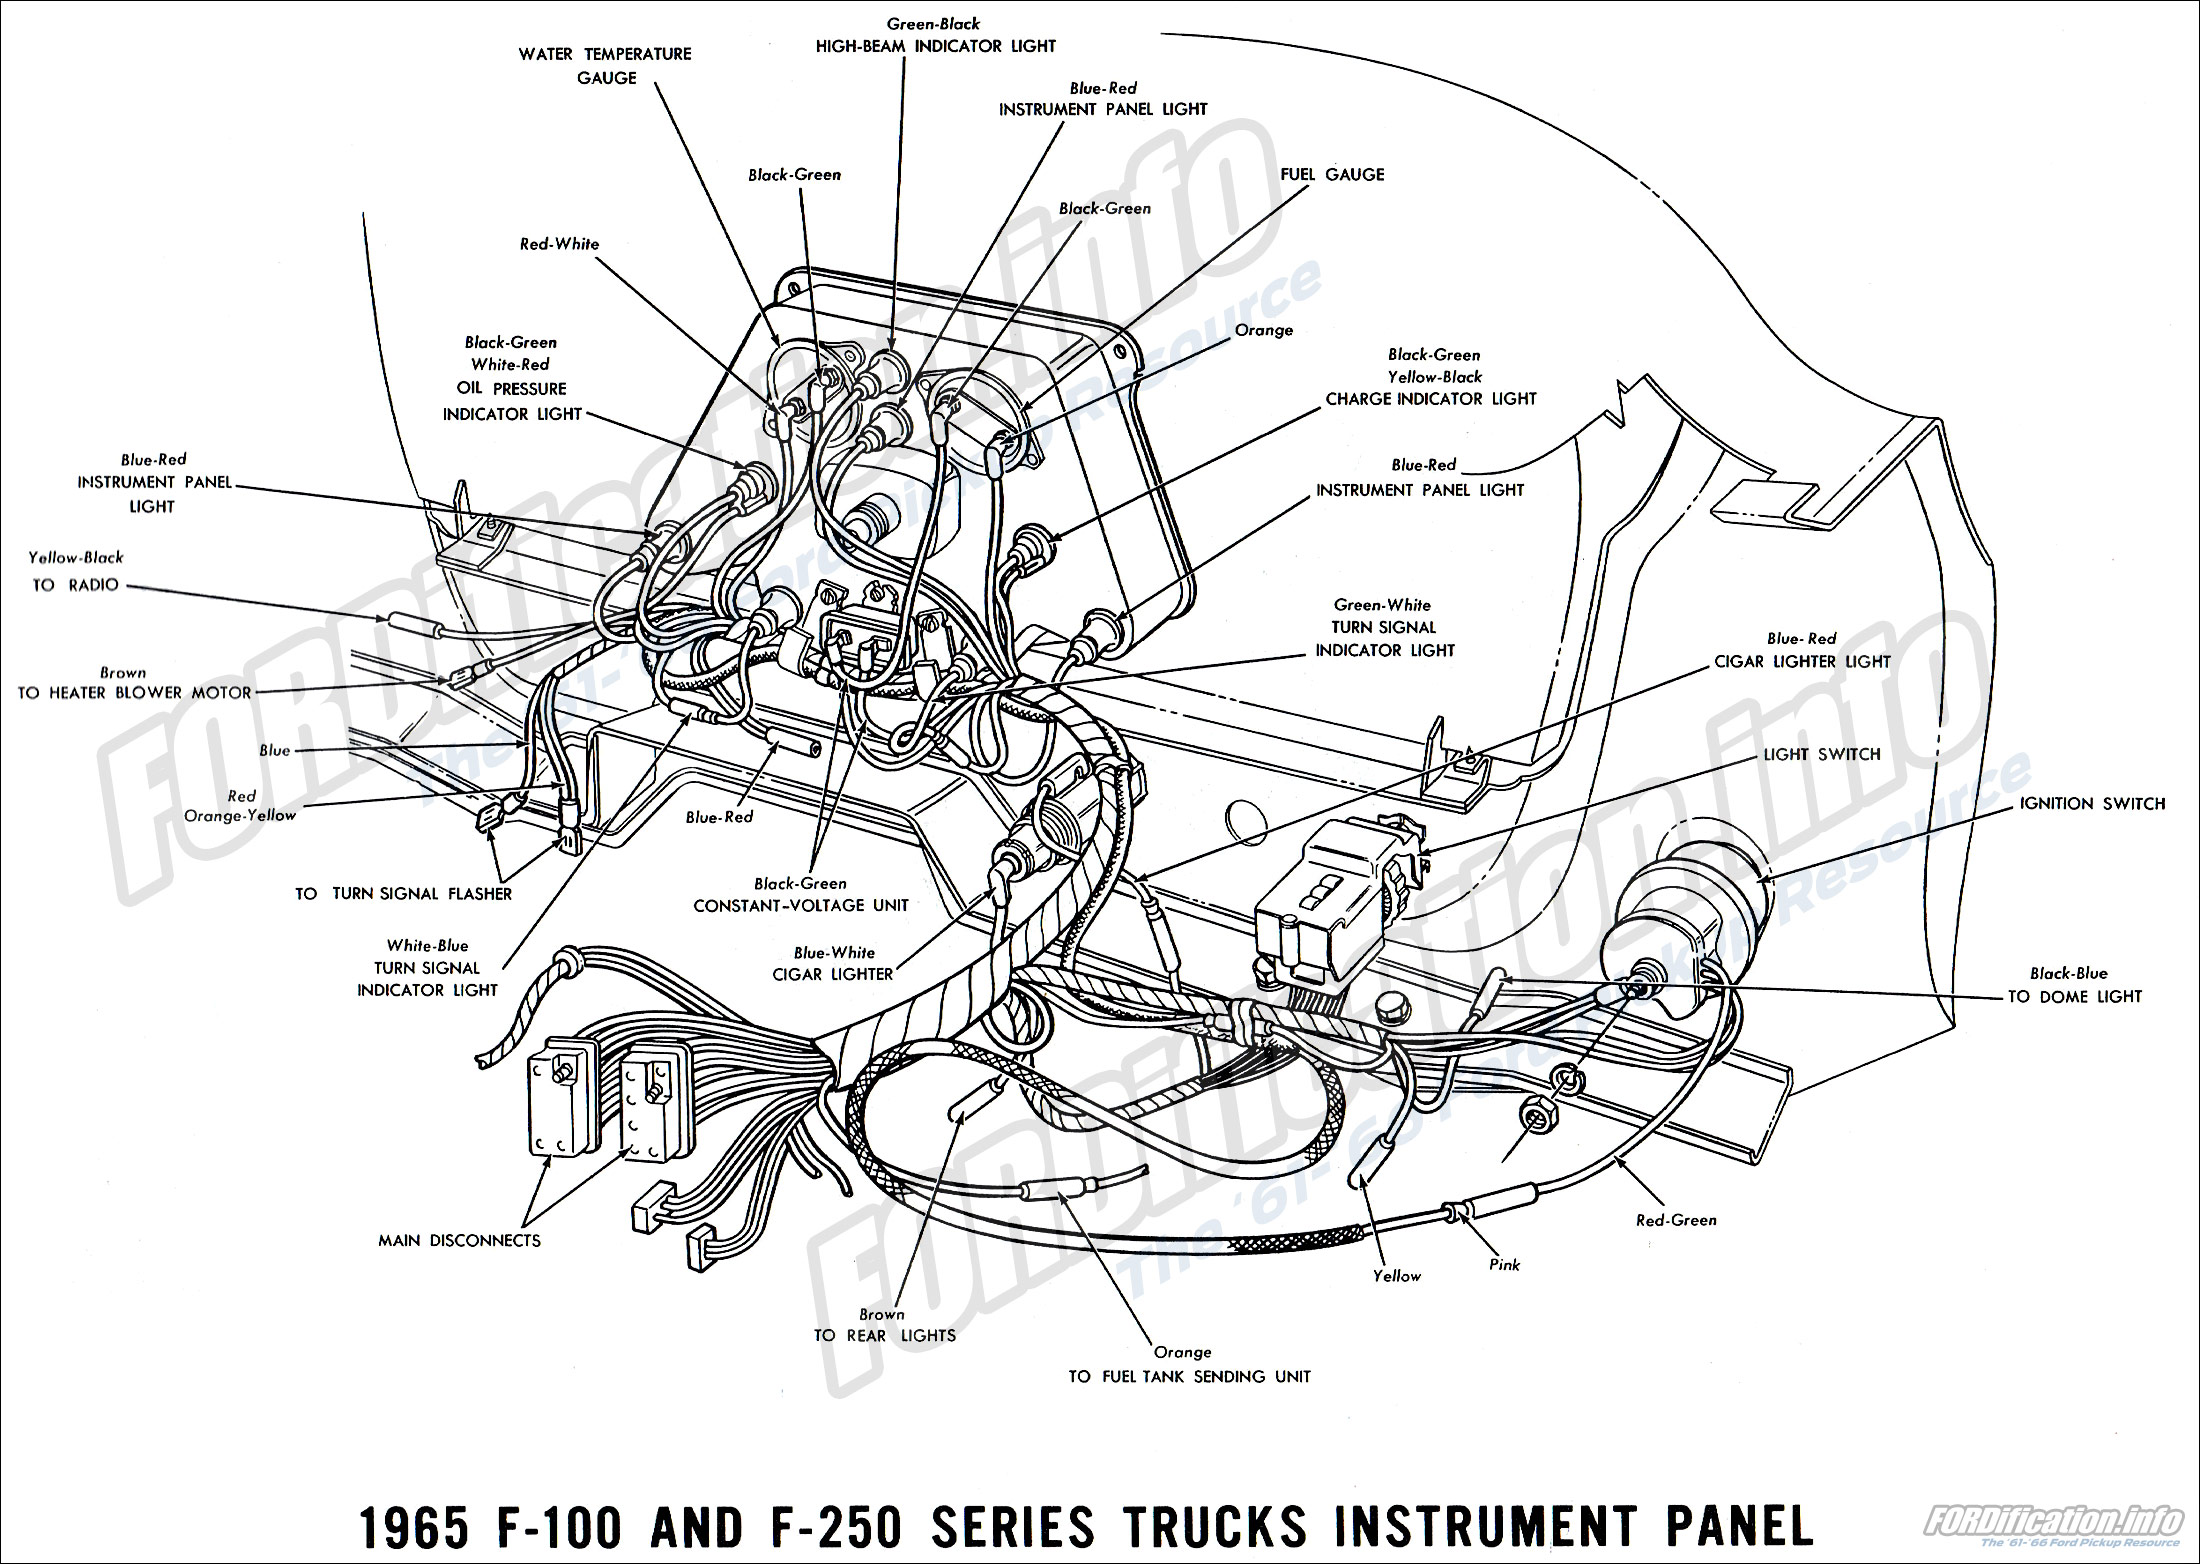 1965 Ford Truck Wiring Diagrams Fordification Info The '61 '66 63 Ford F100  Wiring 66 F100 Wiring Diagram